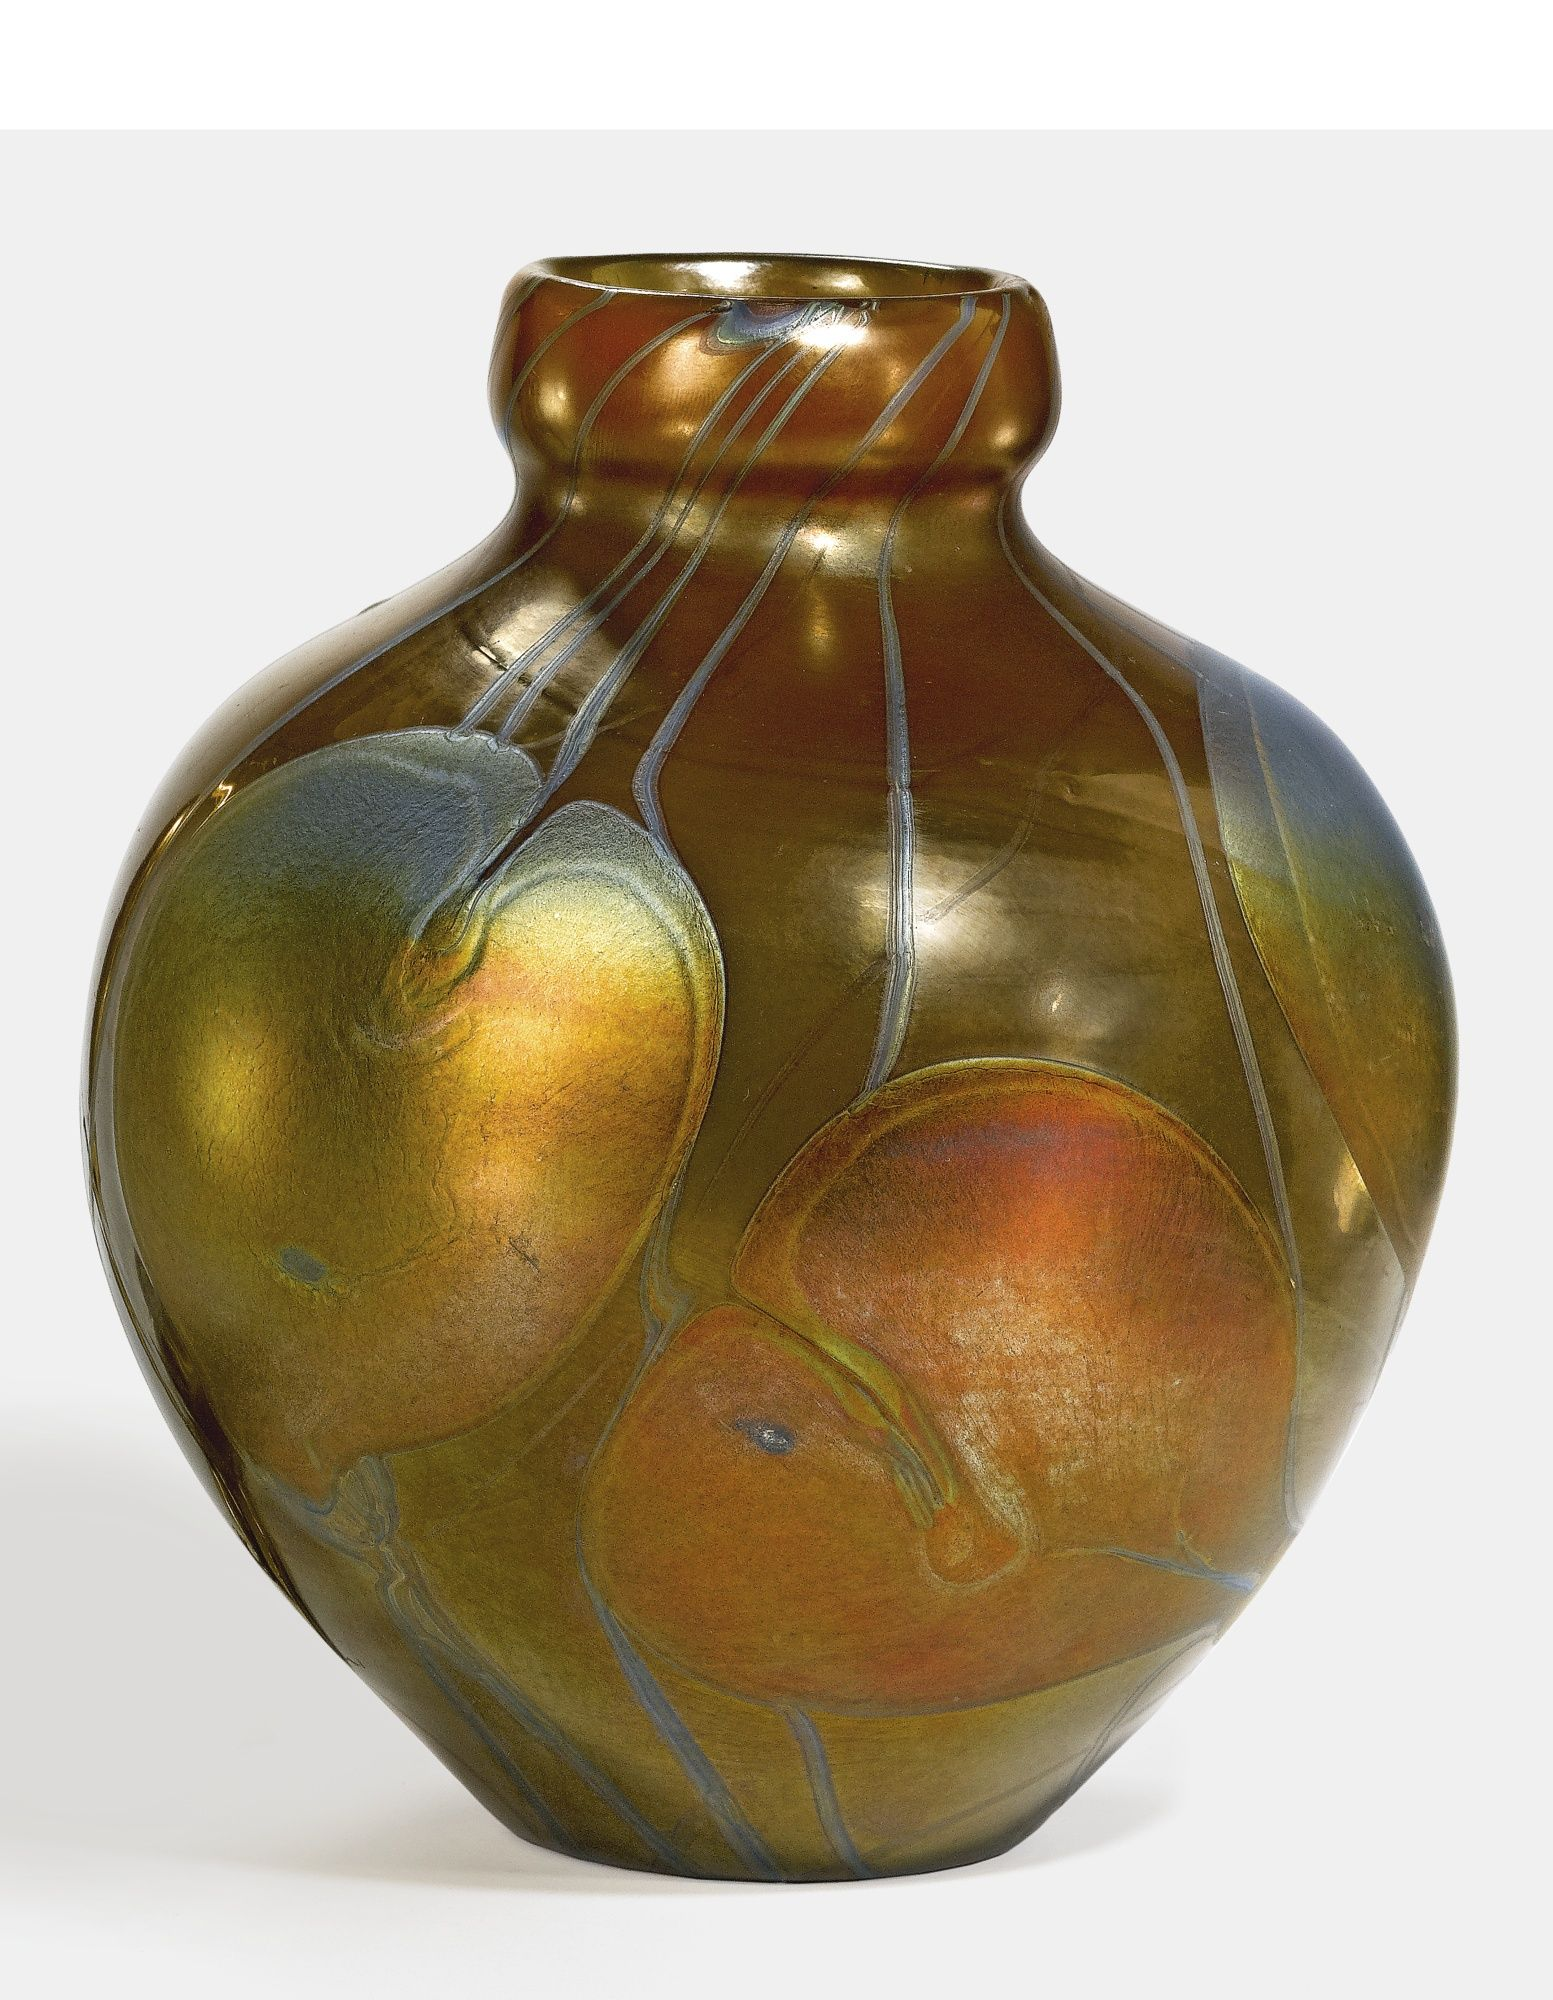 Tiffany Studios Quot Leaf And Vine Quot Decorated Vase Favrile